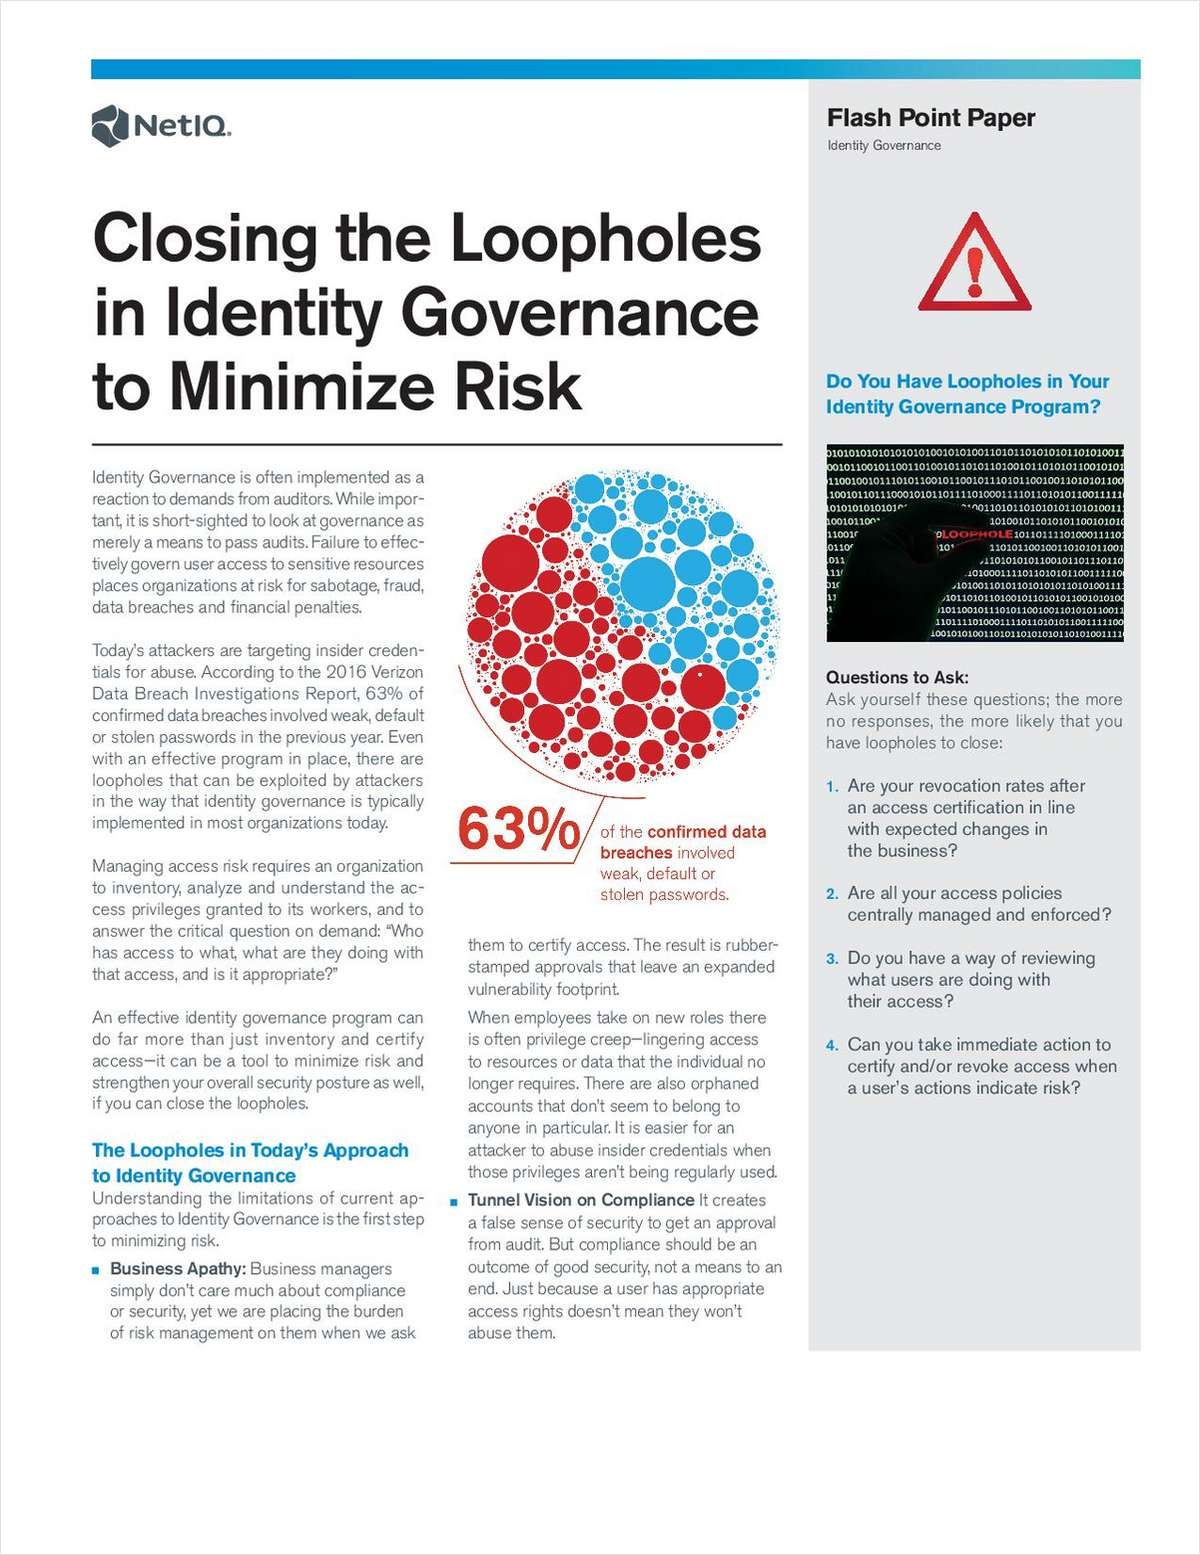 Closing the Loopholes in Identity Governance to Minimize Risk